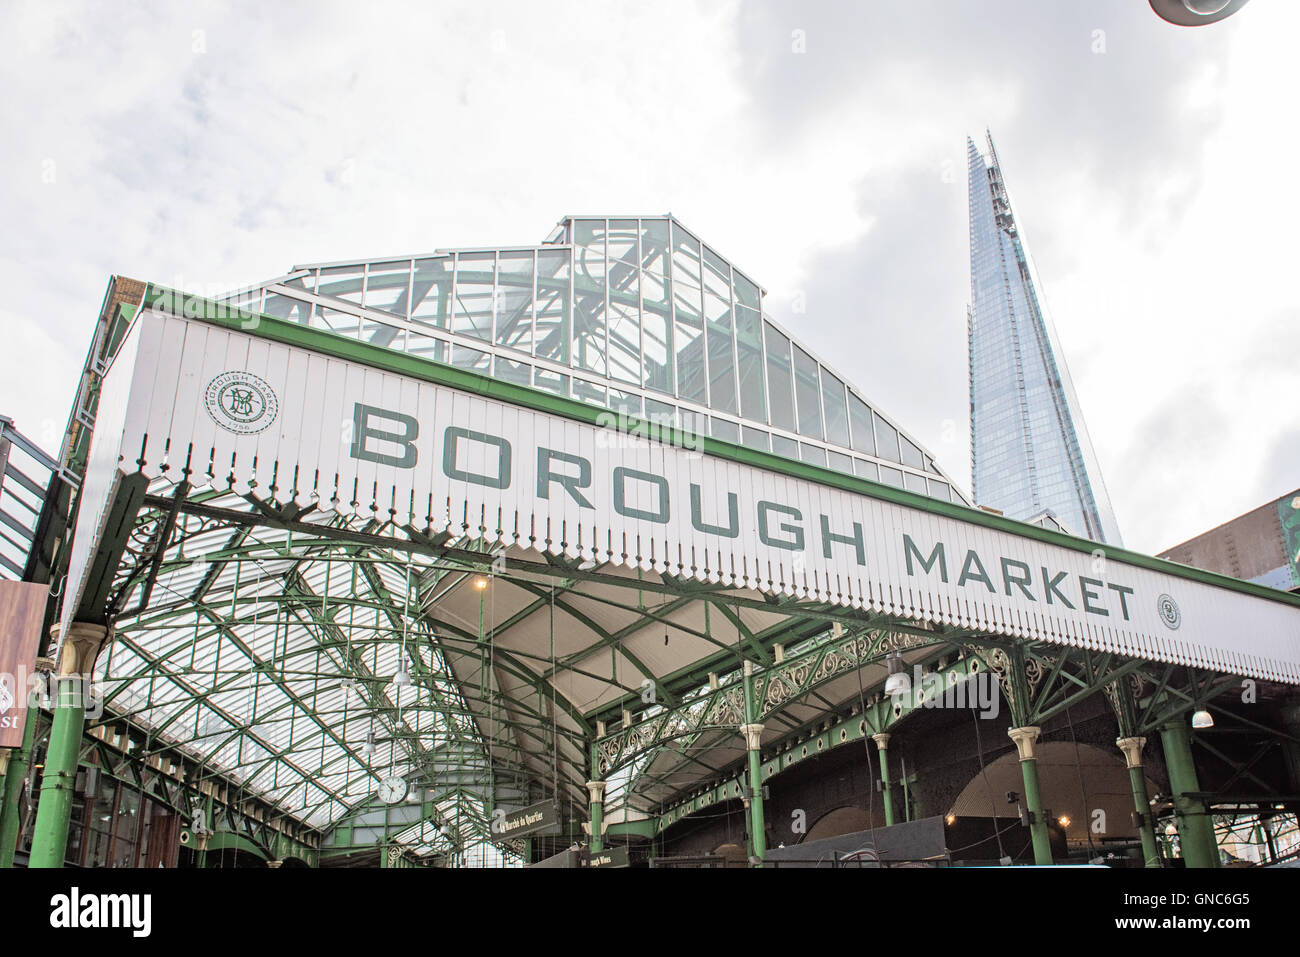 London Borough Market with Shard in the background - Stock Image